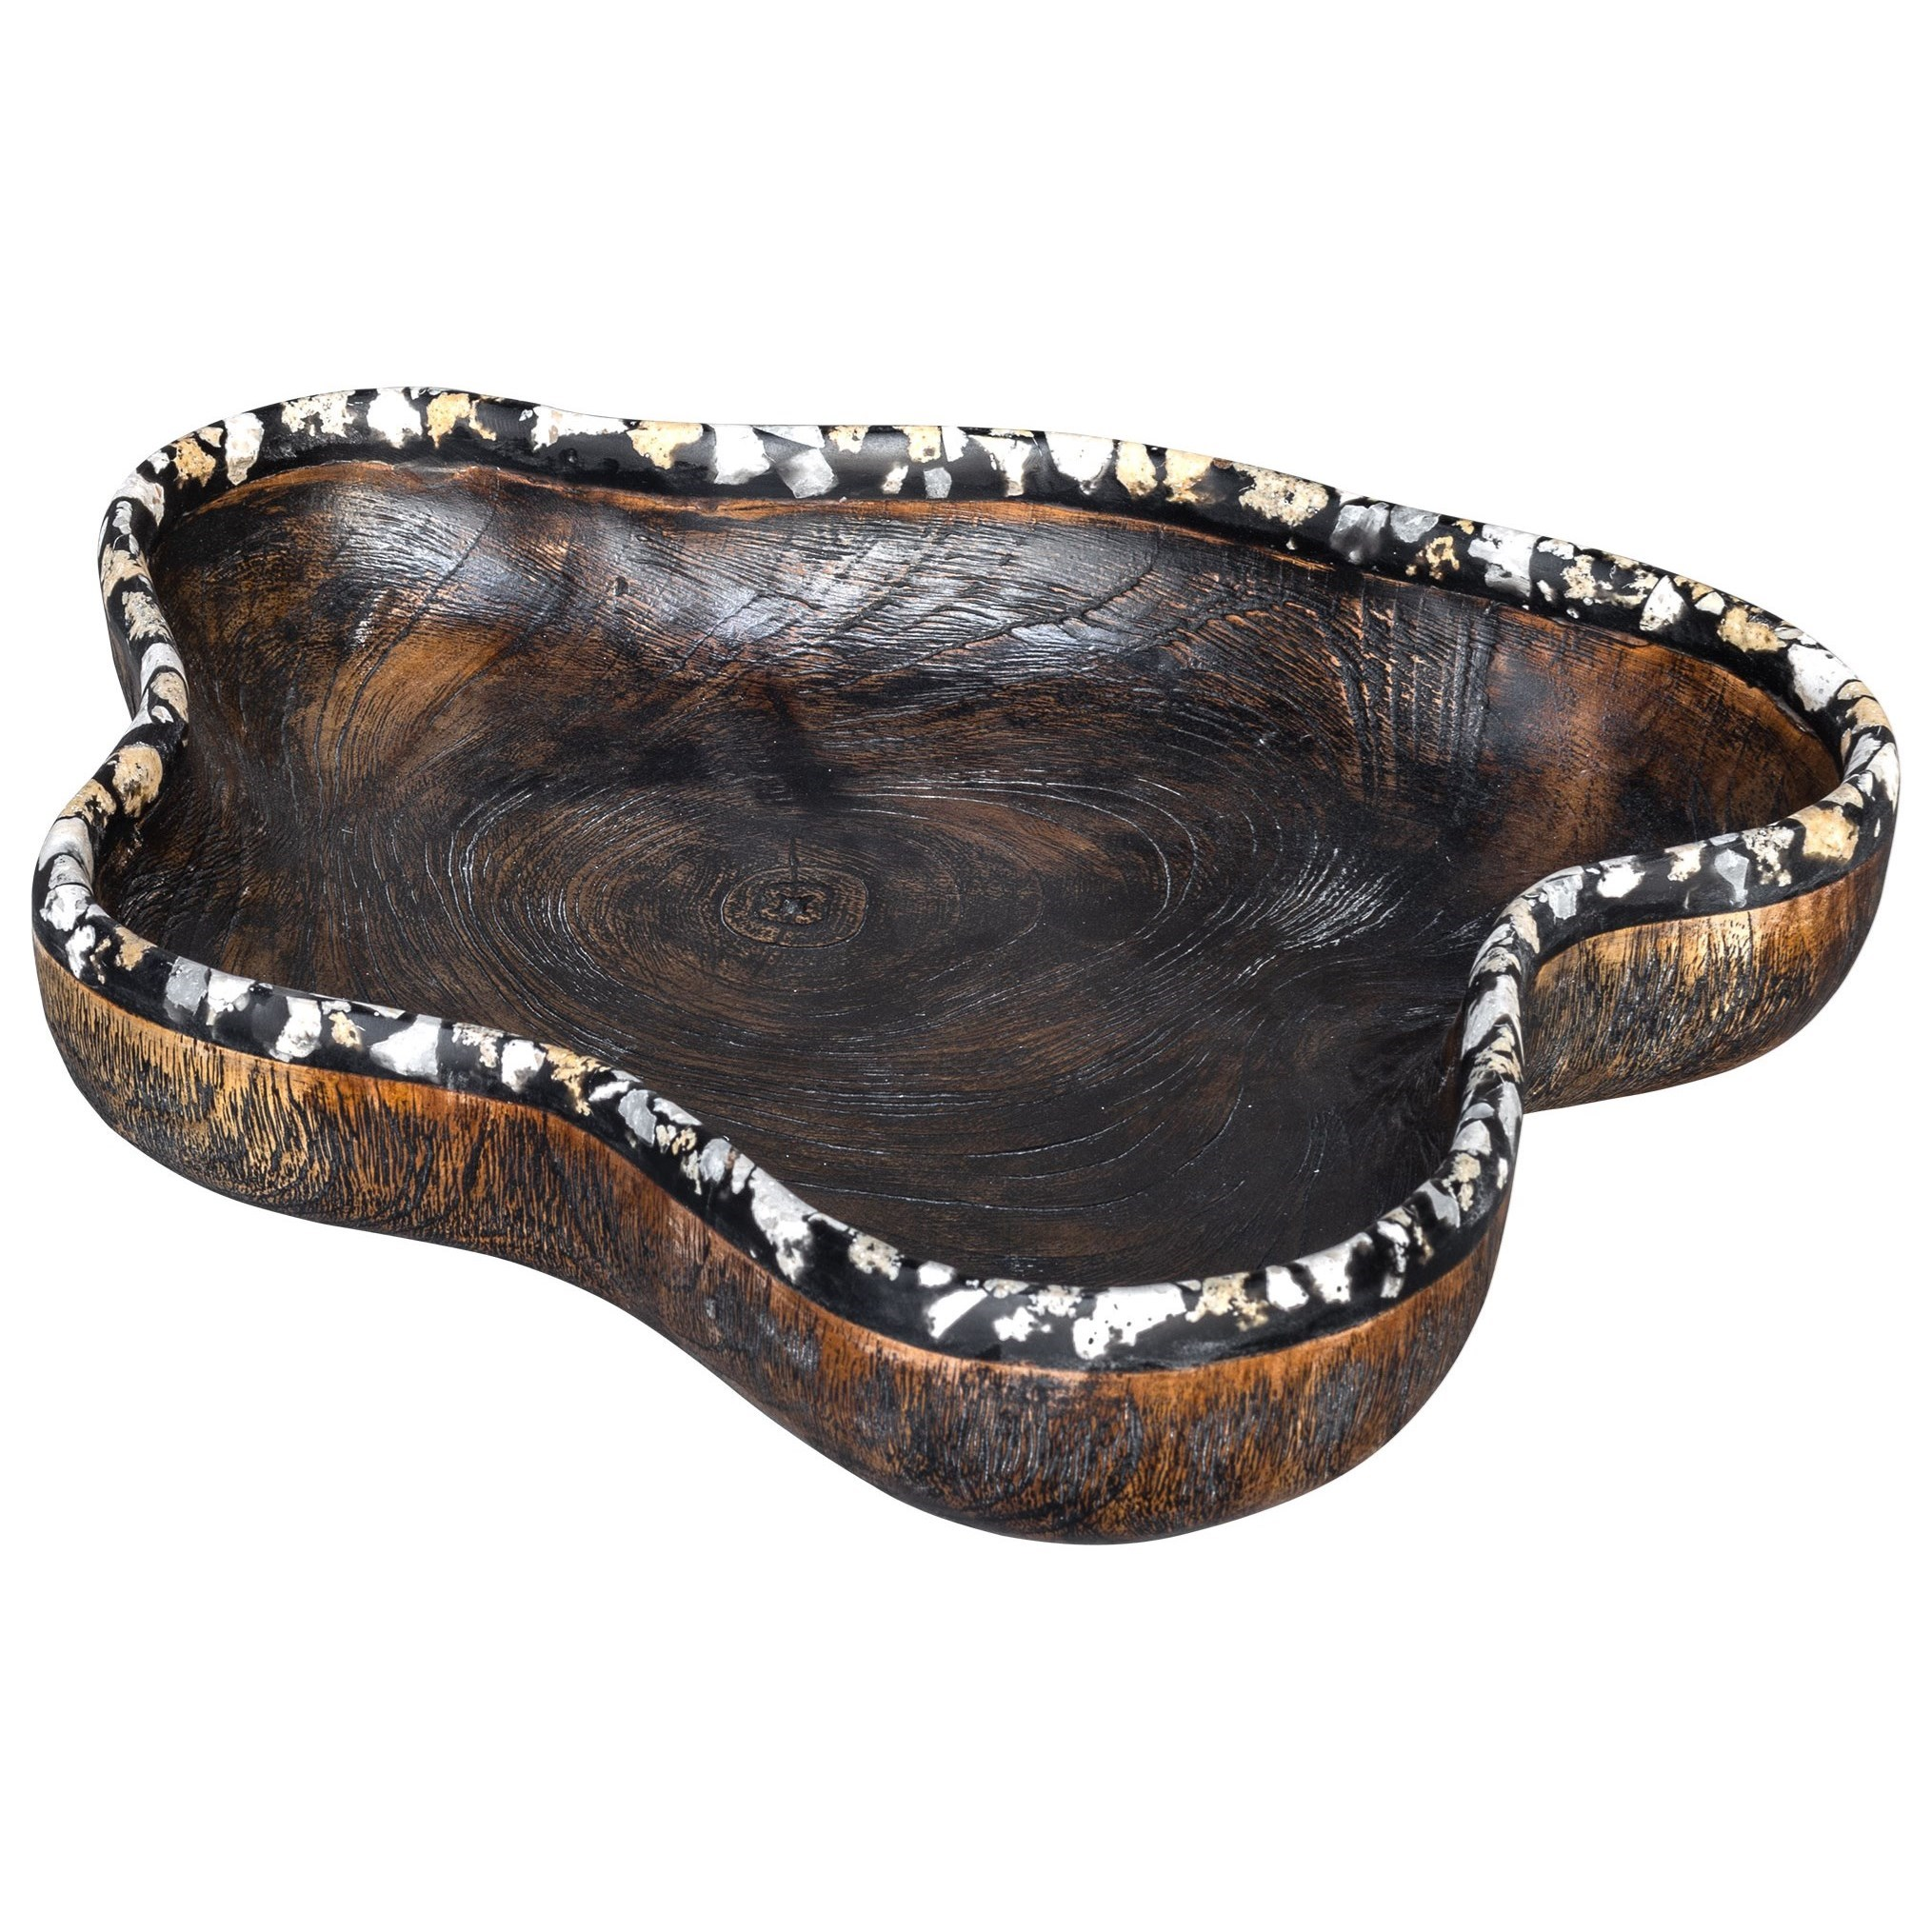 Accessories Chikasha Wooden Bowl - Large by Uttermost at Hudson's Furniture